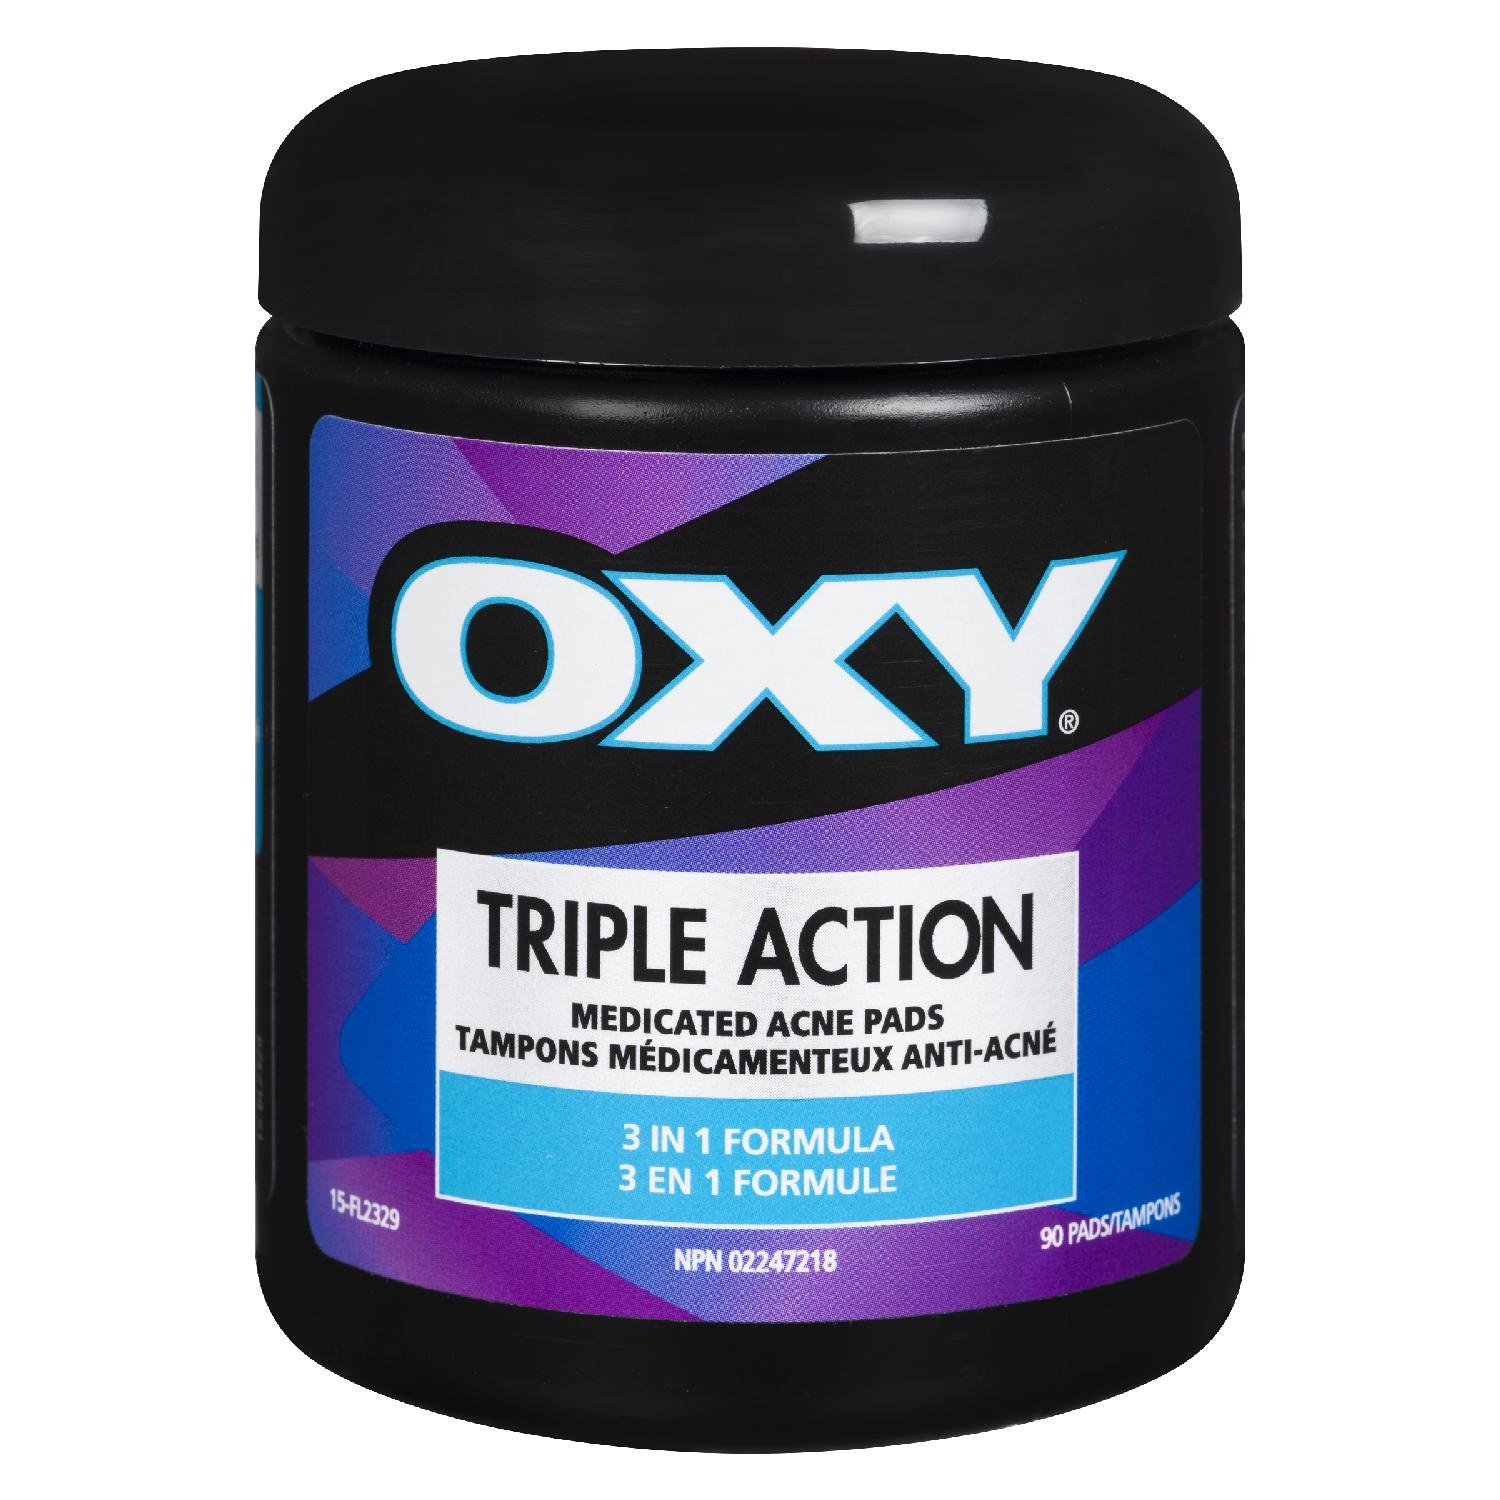 Oxy Medicated Acne Pads Triple Action 90's 0.37-Inches THE MENTHOLATUM CO INC.